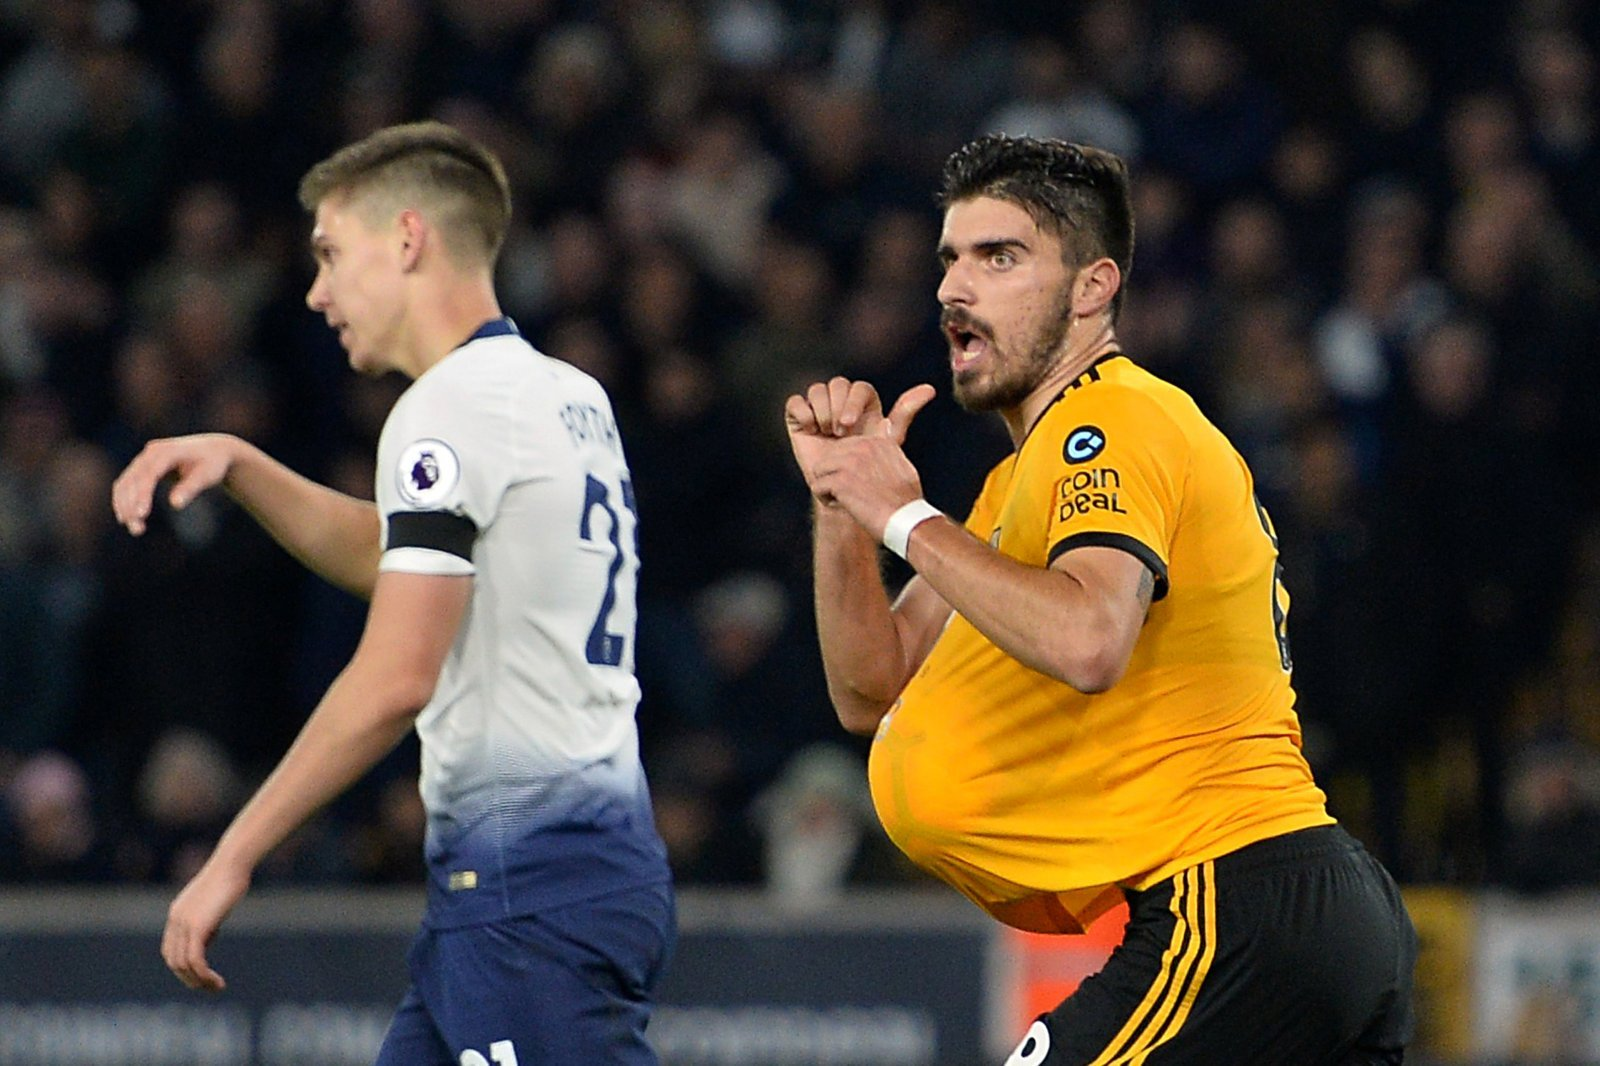 Ruben Neves is worth way more than £40 million